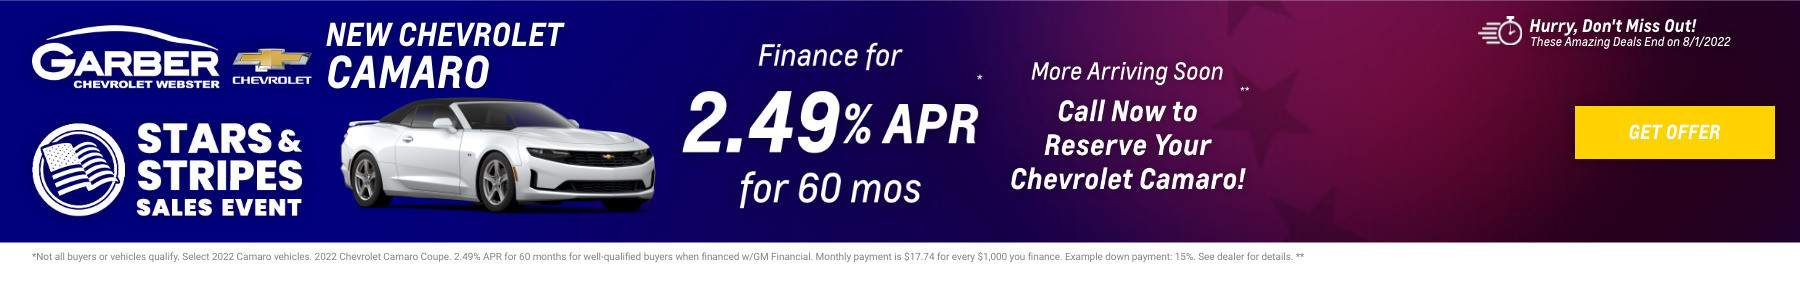 New Chevrolet Camaro Current Deals and Offers in Rochester, NY